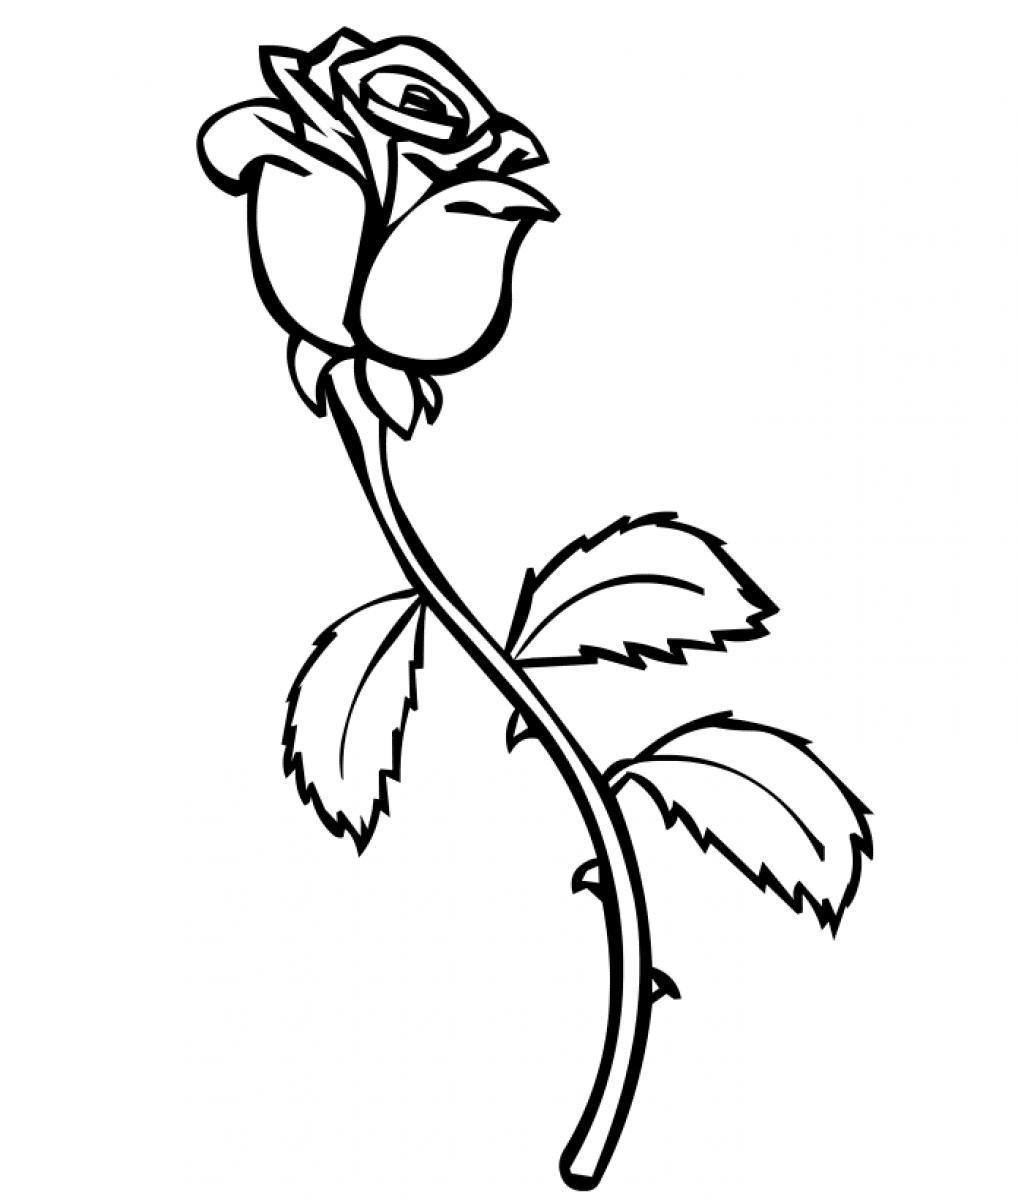 1018x1200 Cool Coloring Page Of A Rose Long Stem Bud Printable